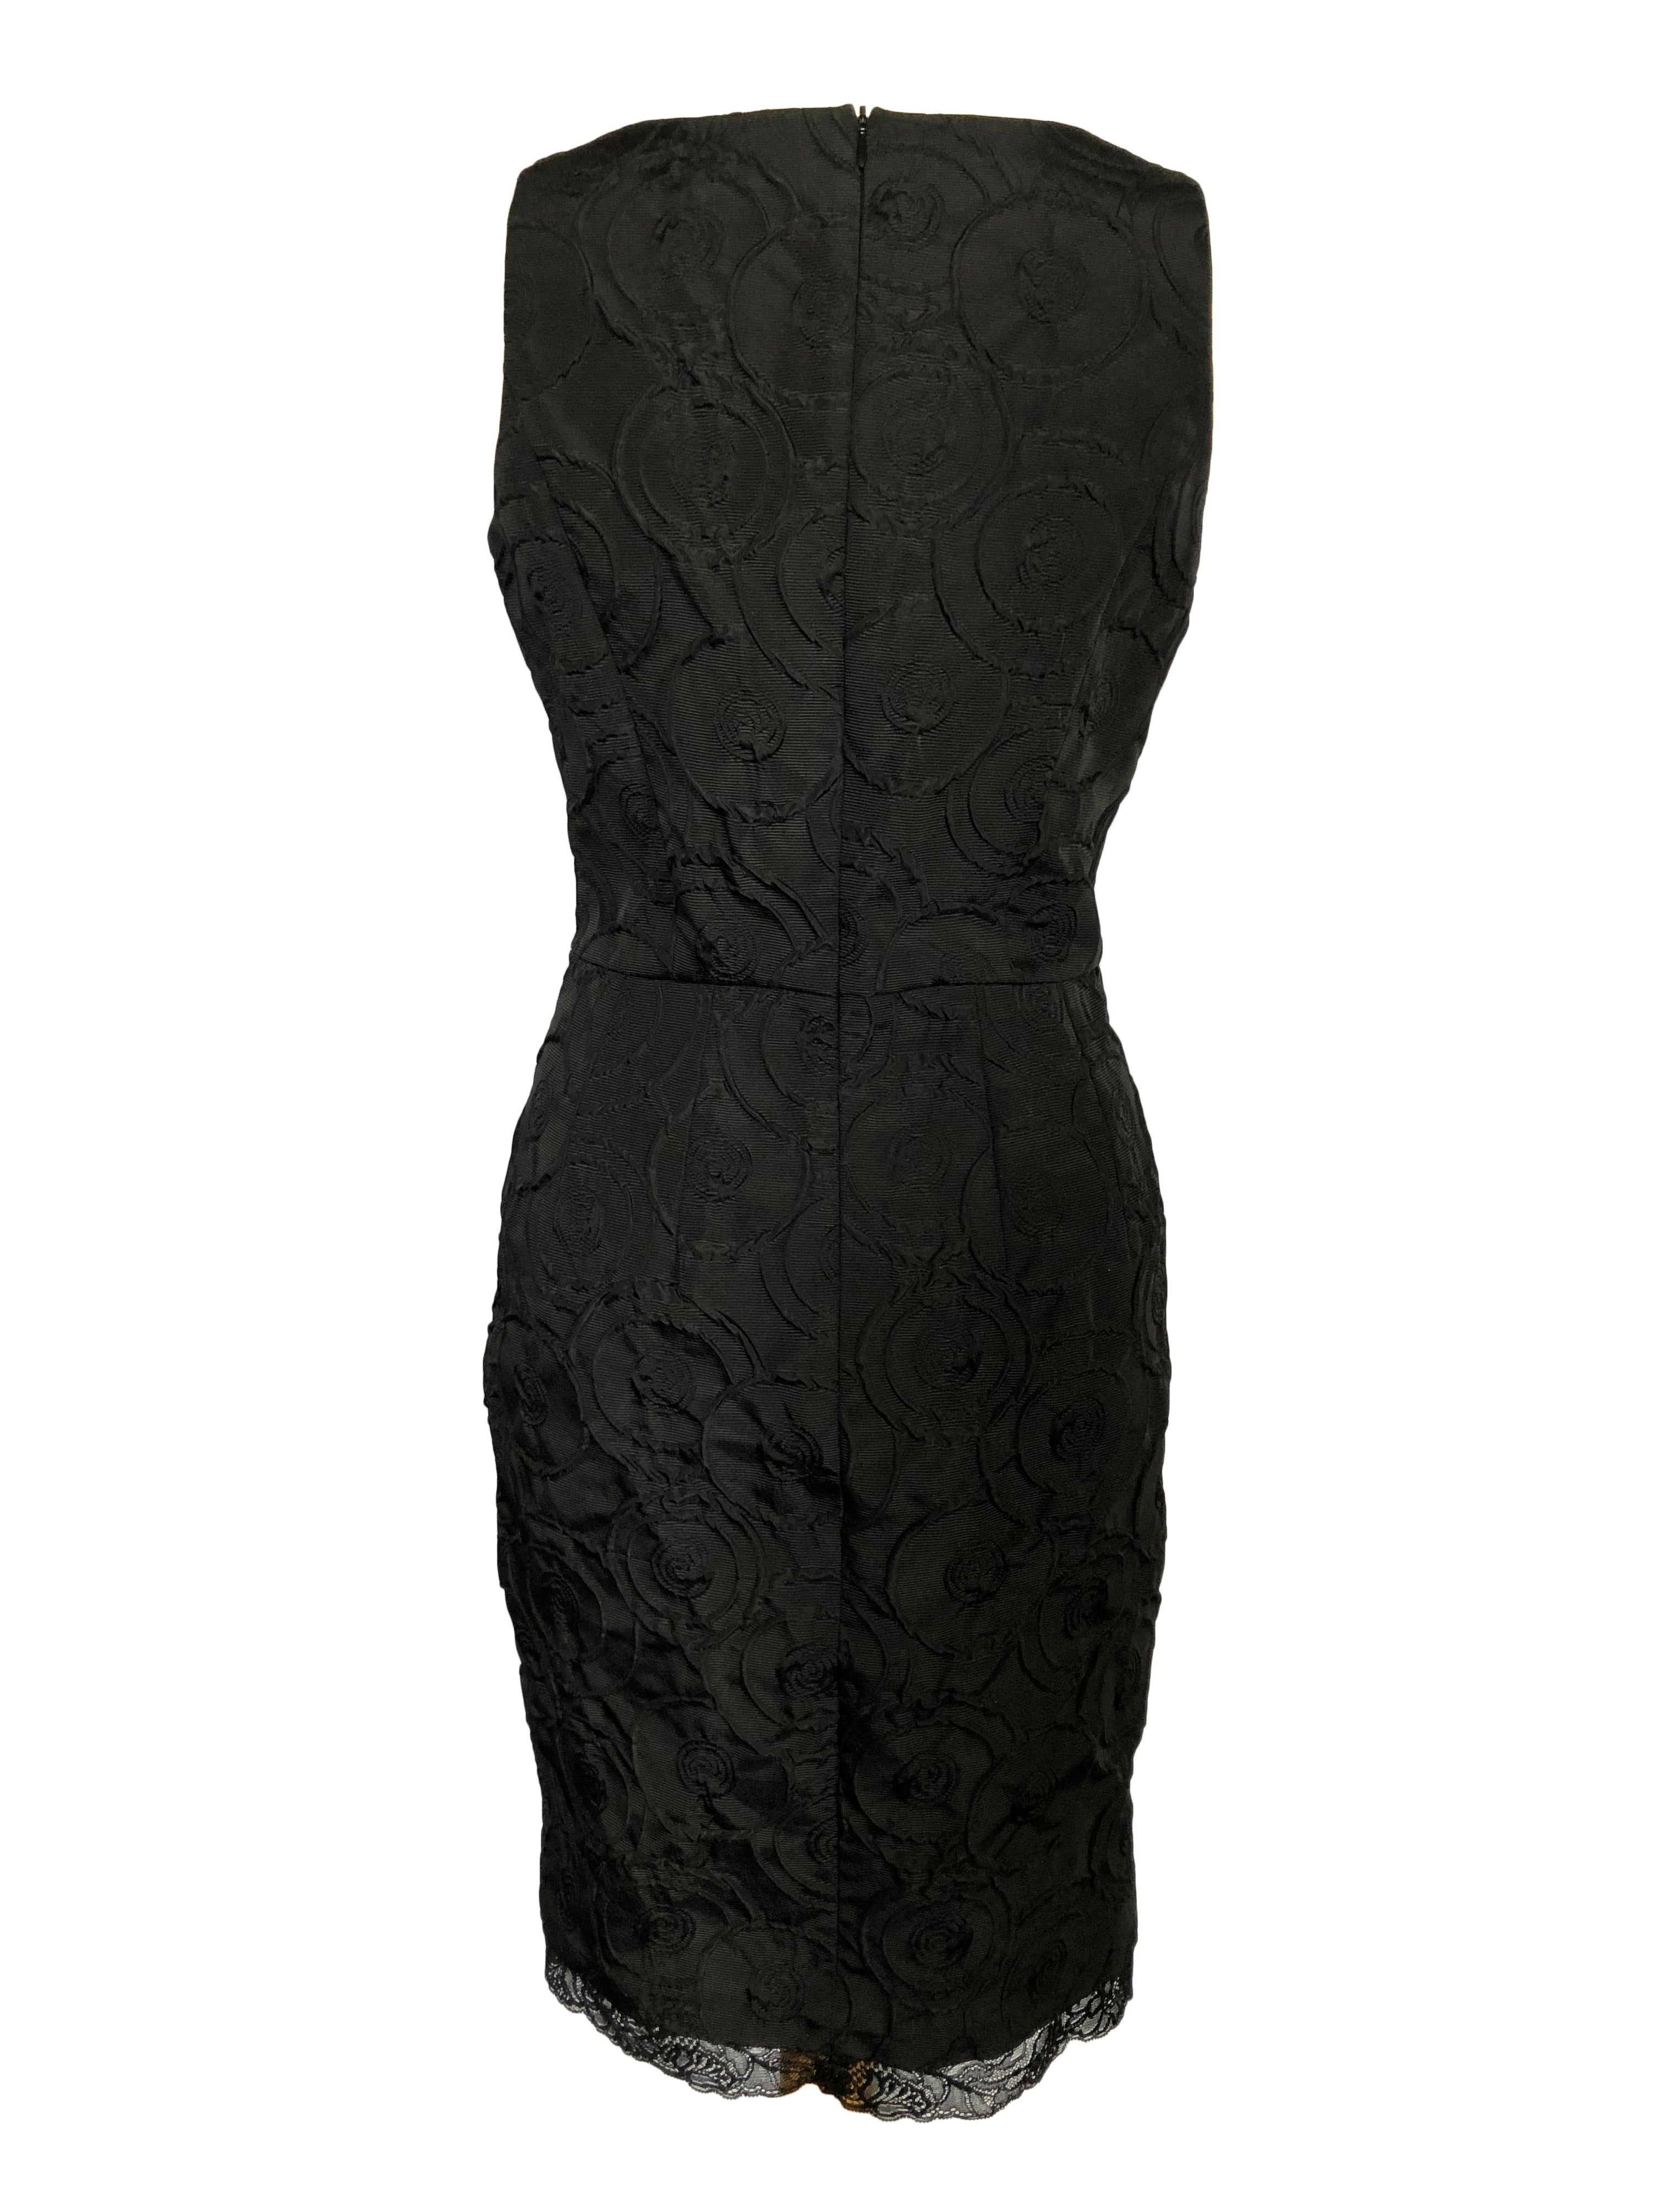 Georges Rech Synonyme Dress in Black Size 38 (EU)